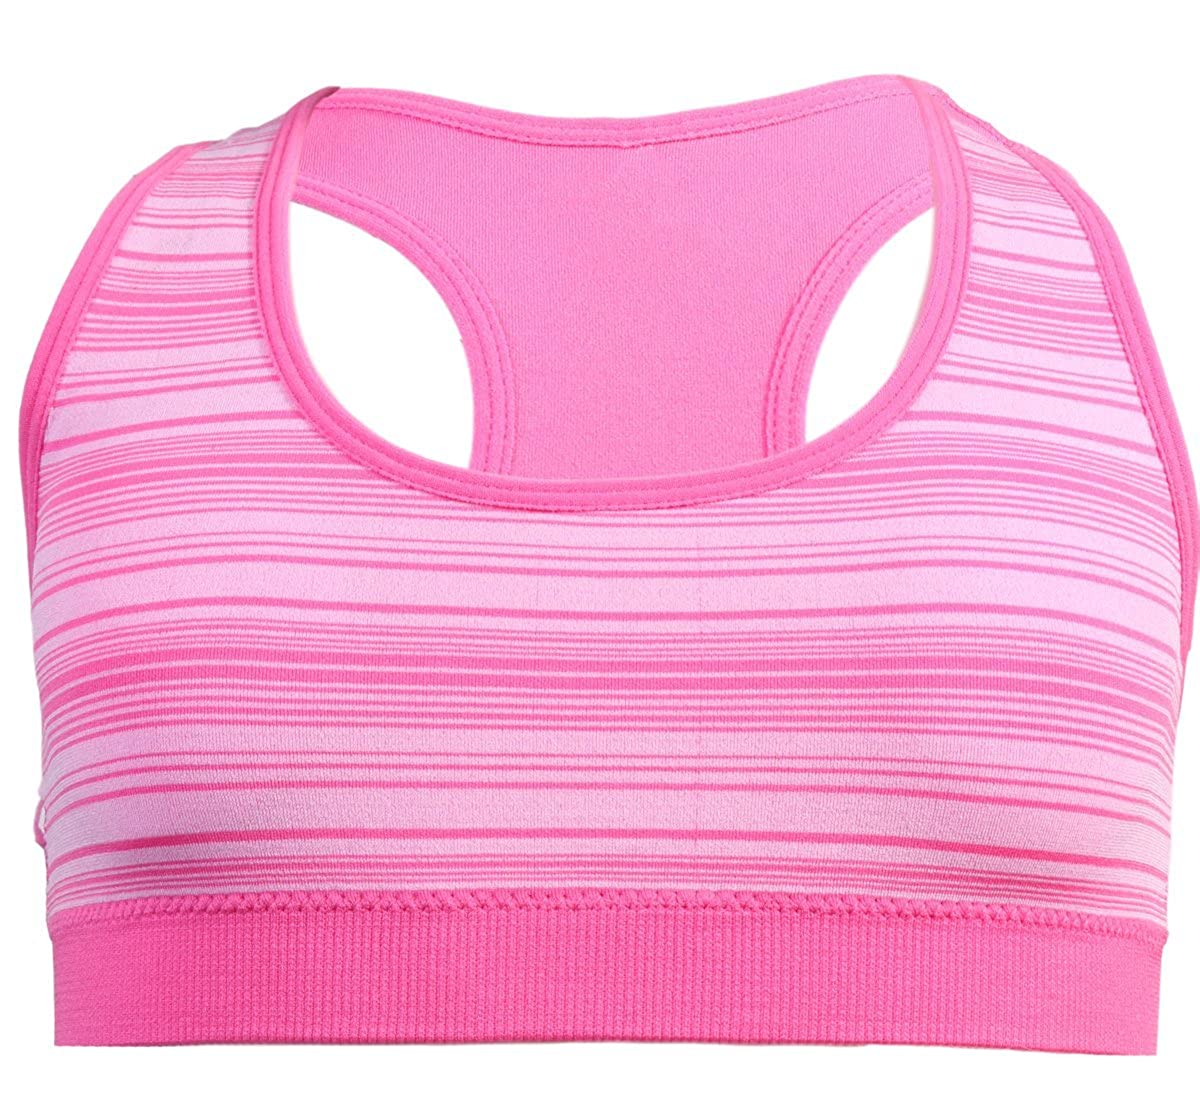 4 Pack dELiA*s Girls Seamless Sports Performance Bra with Removable Pads